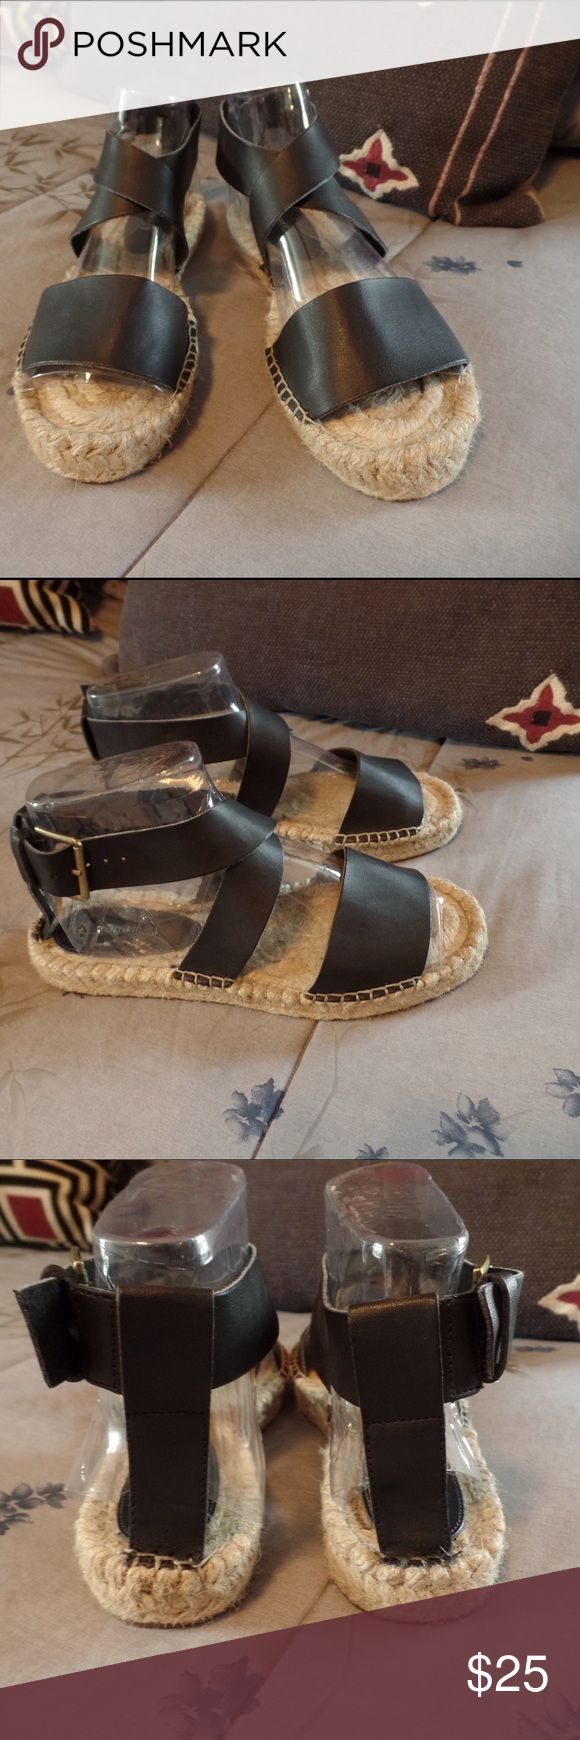 Ankle Strap Sandals Dup for Vince Elise sandals! Never worn, runs true to size. Forever 21 Shoes Sandals